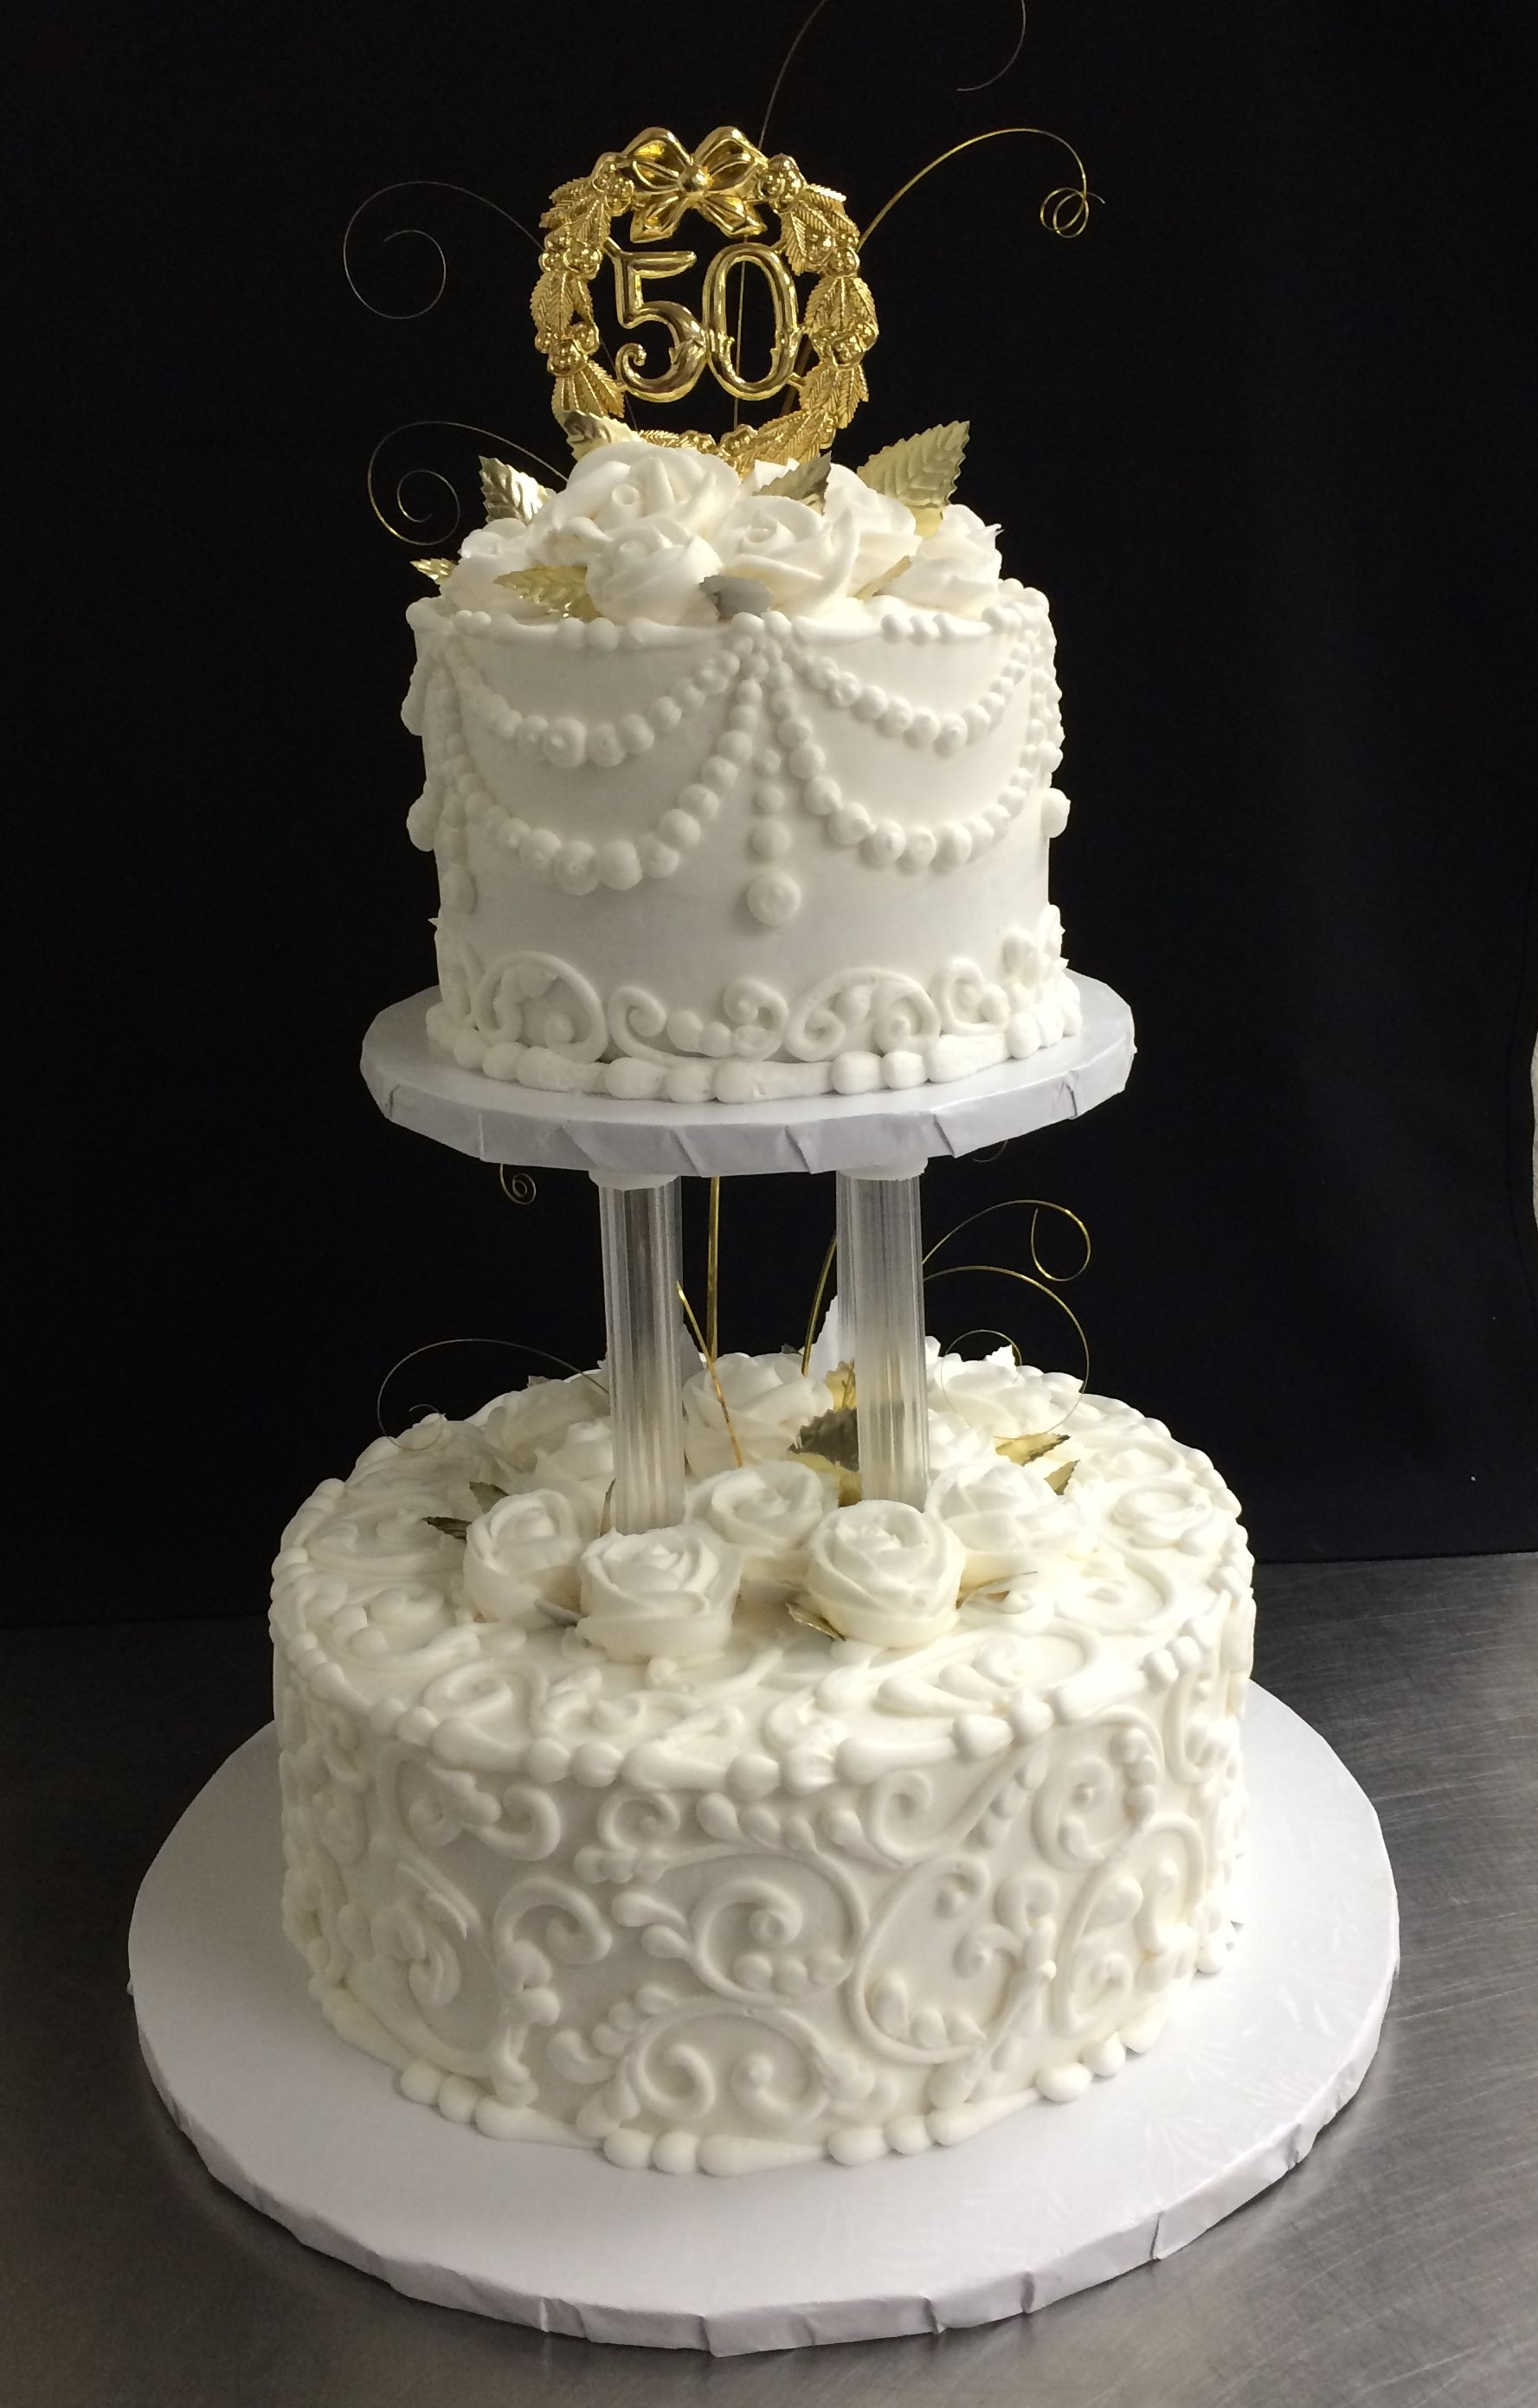 50th Anniversary Cake By Stephanie Dillon Ls1 Hy Vee Wedding Cakes